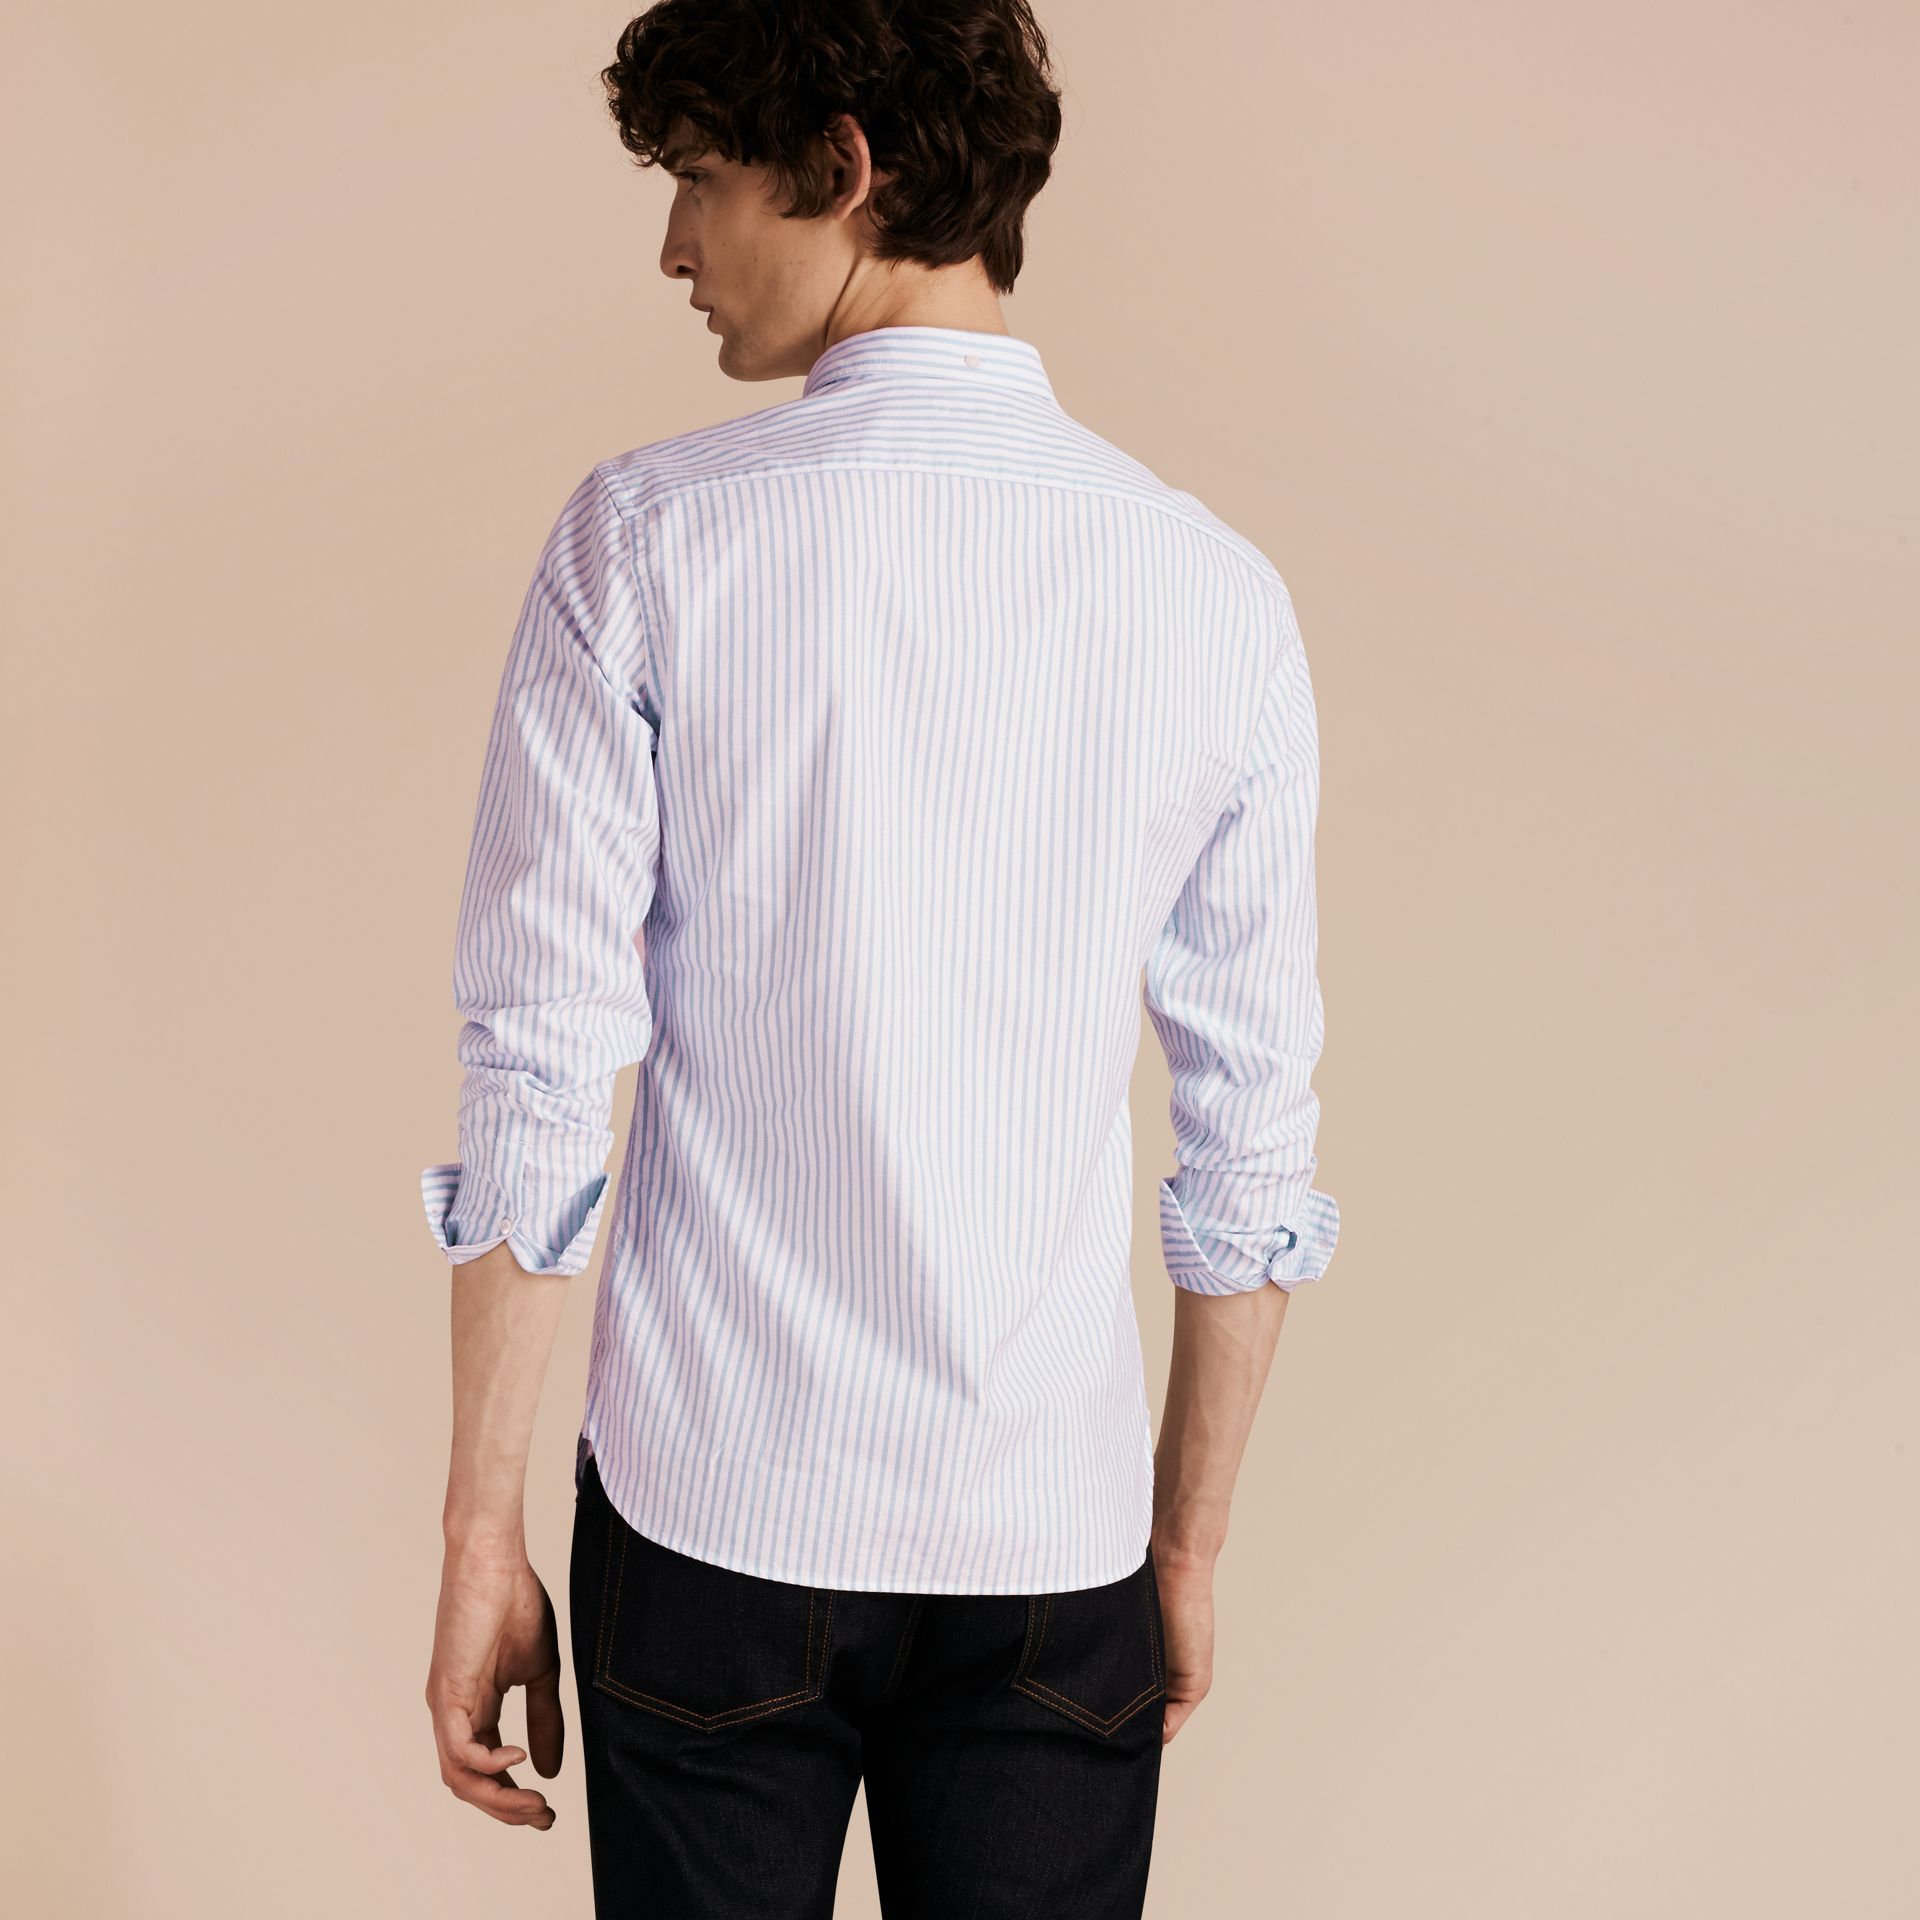 Pale blue Button-down Collar Oxford Stripe Cotton Shirt Pale Blue - gallery image 2